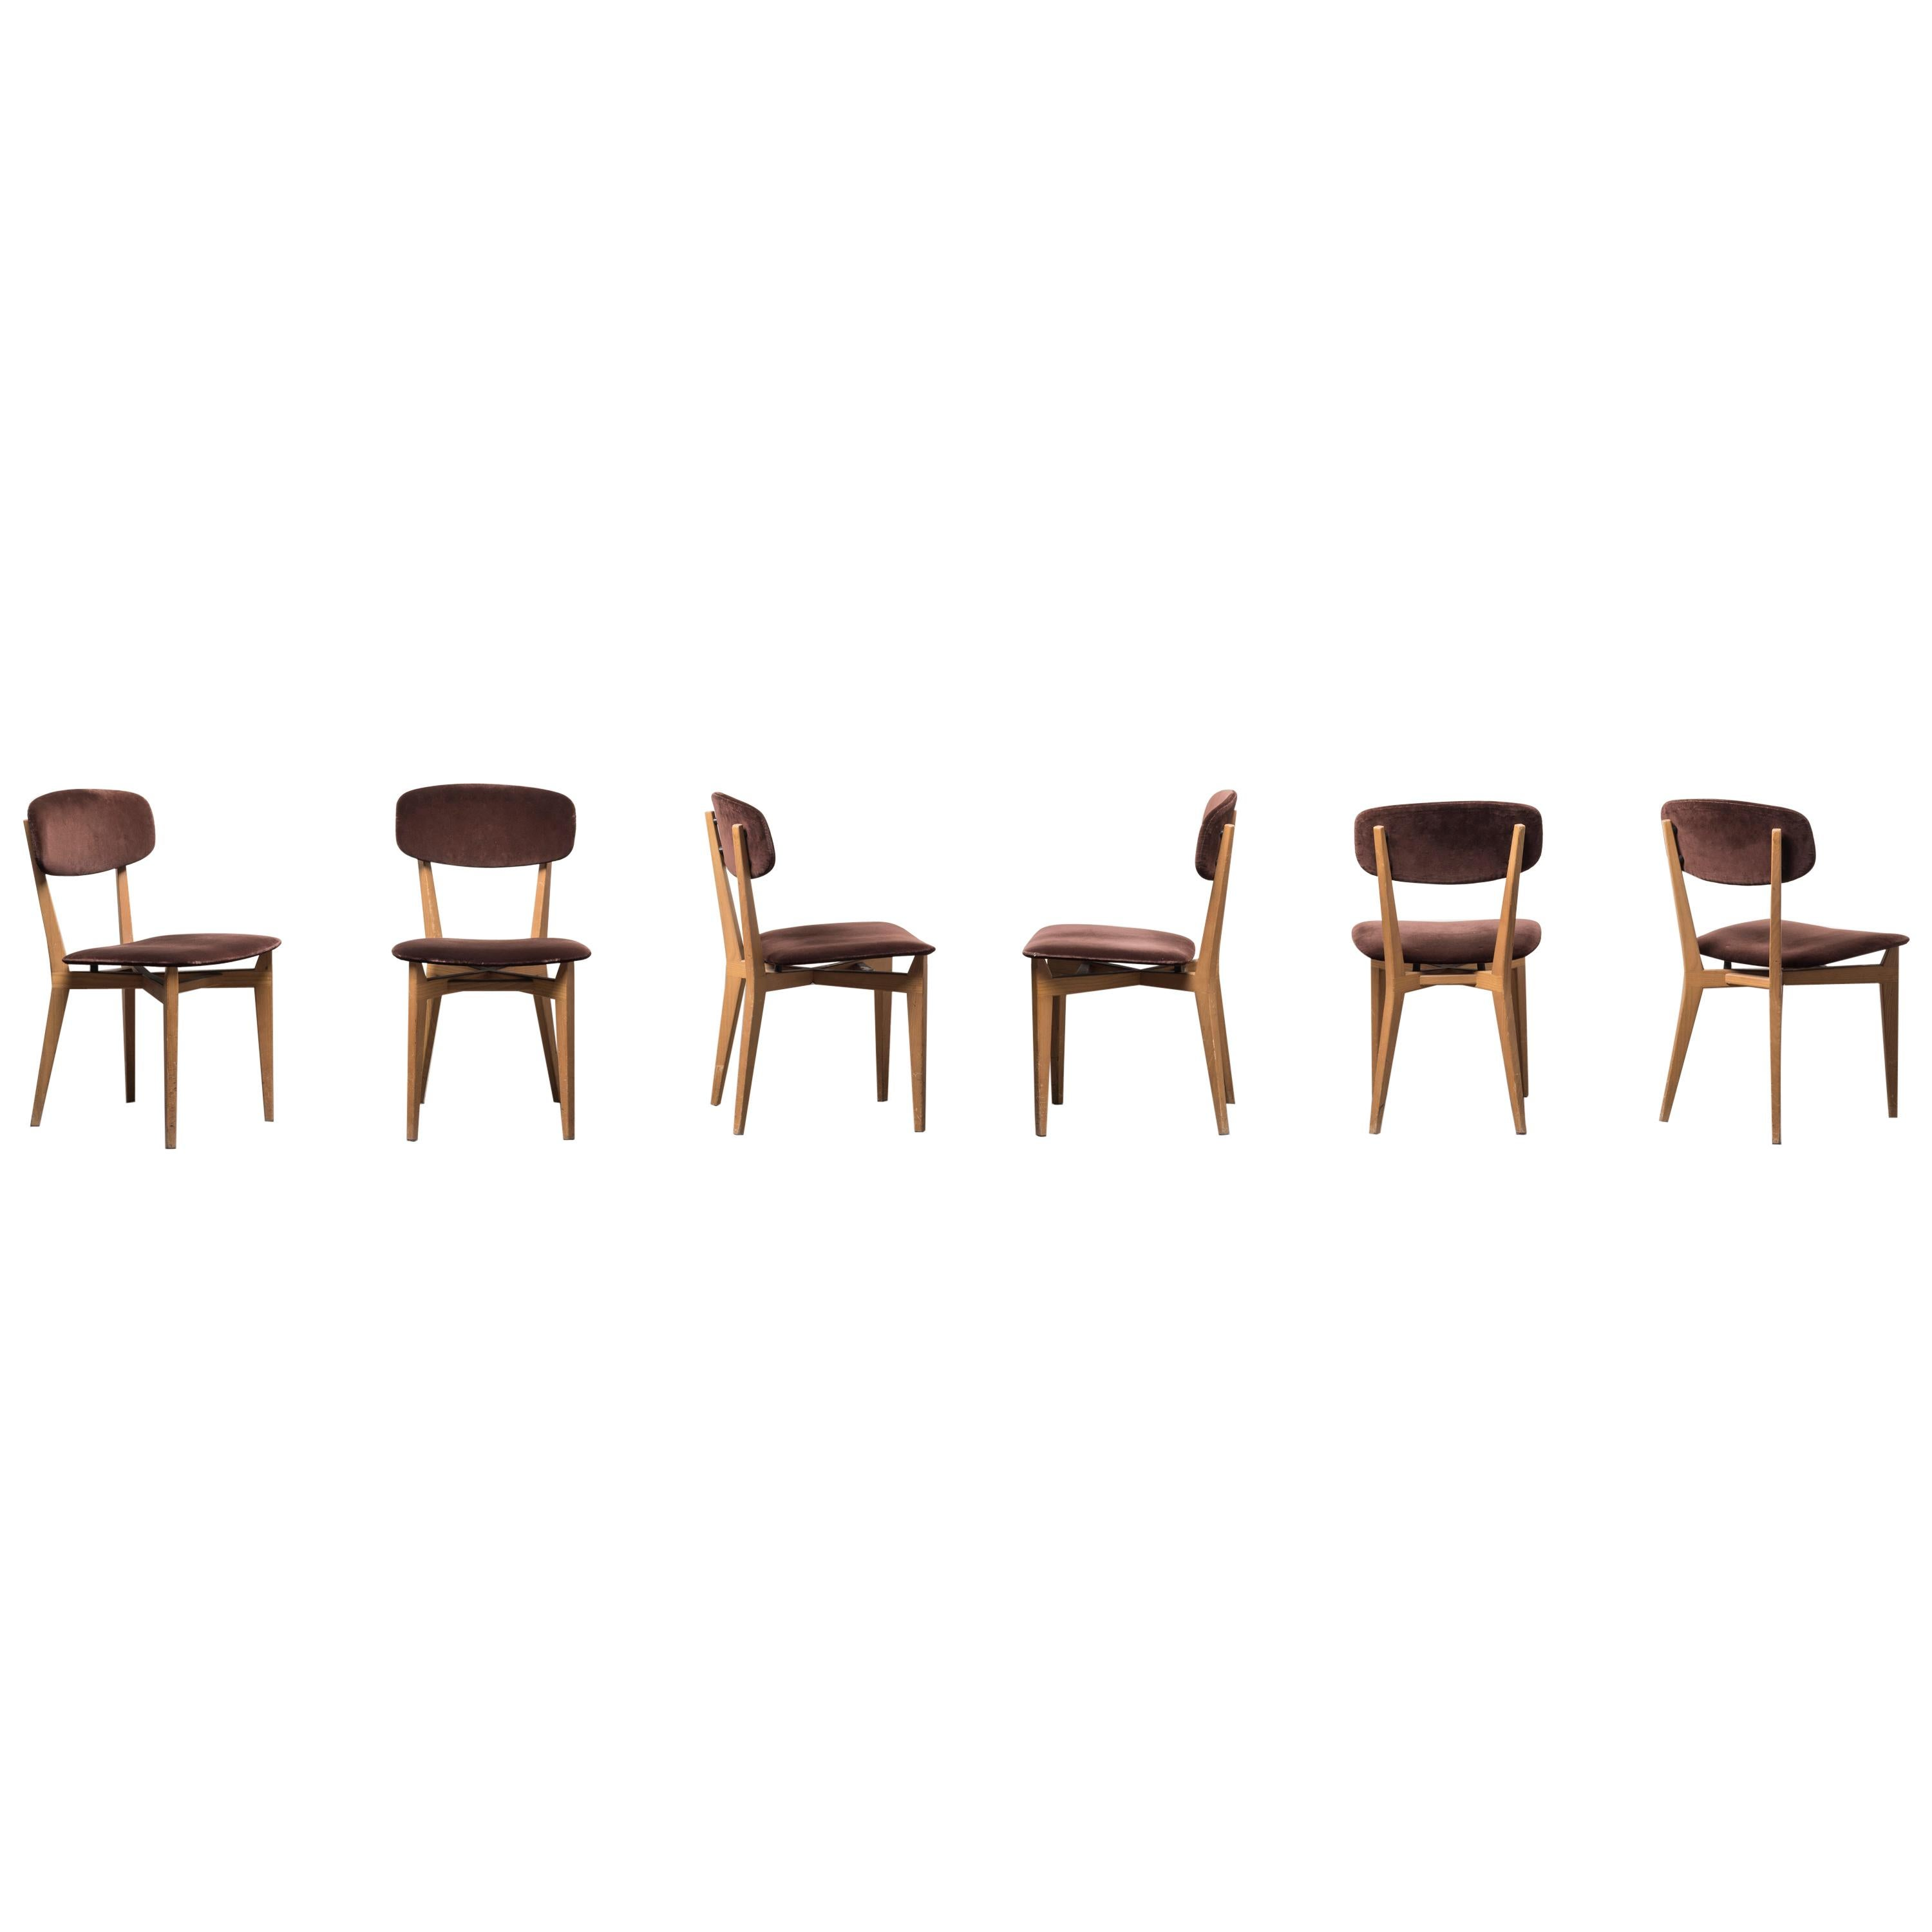 Six 691 Chairs by Ico Parisi